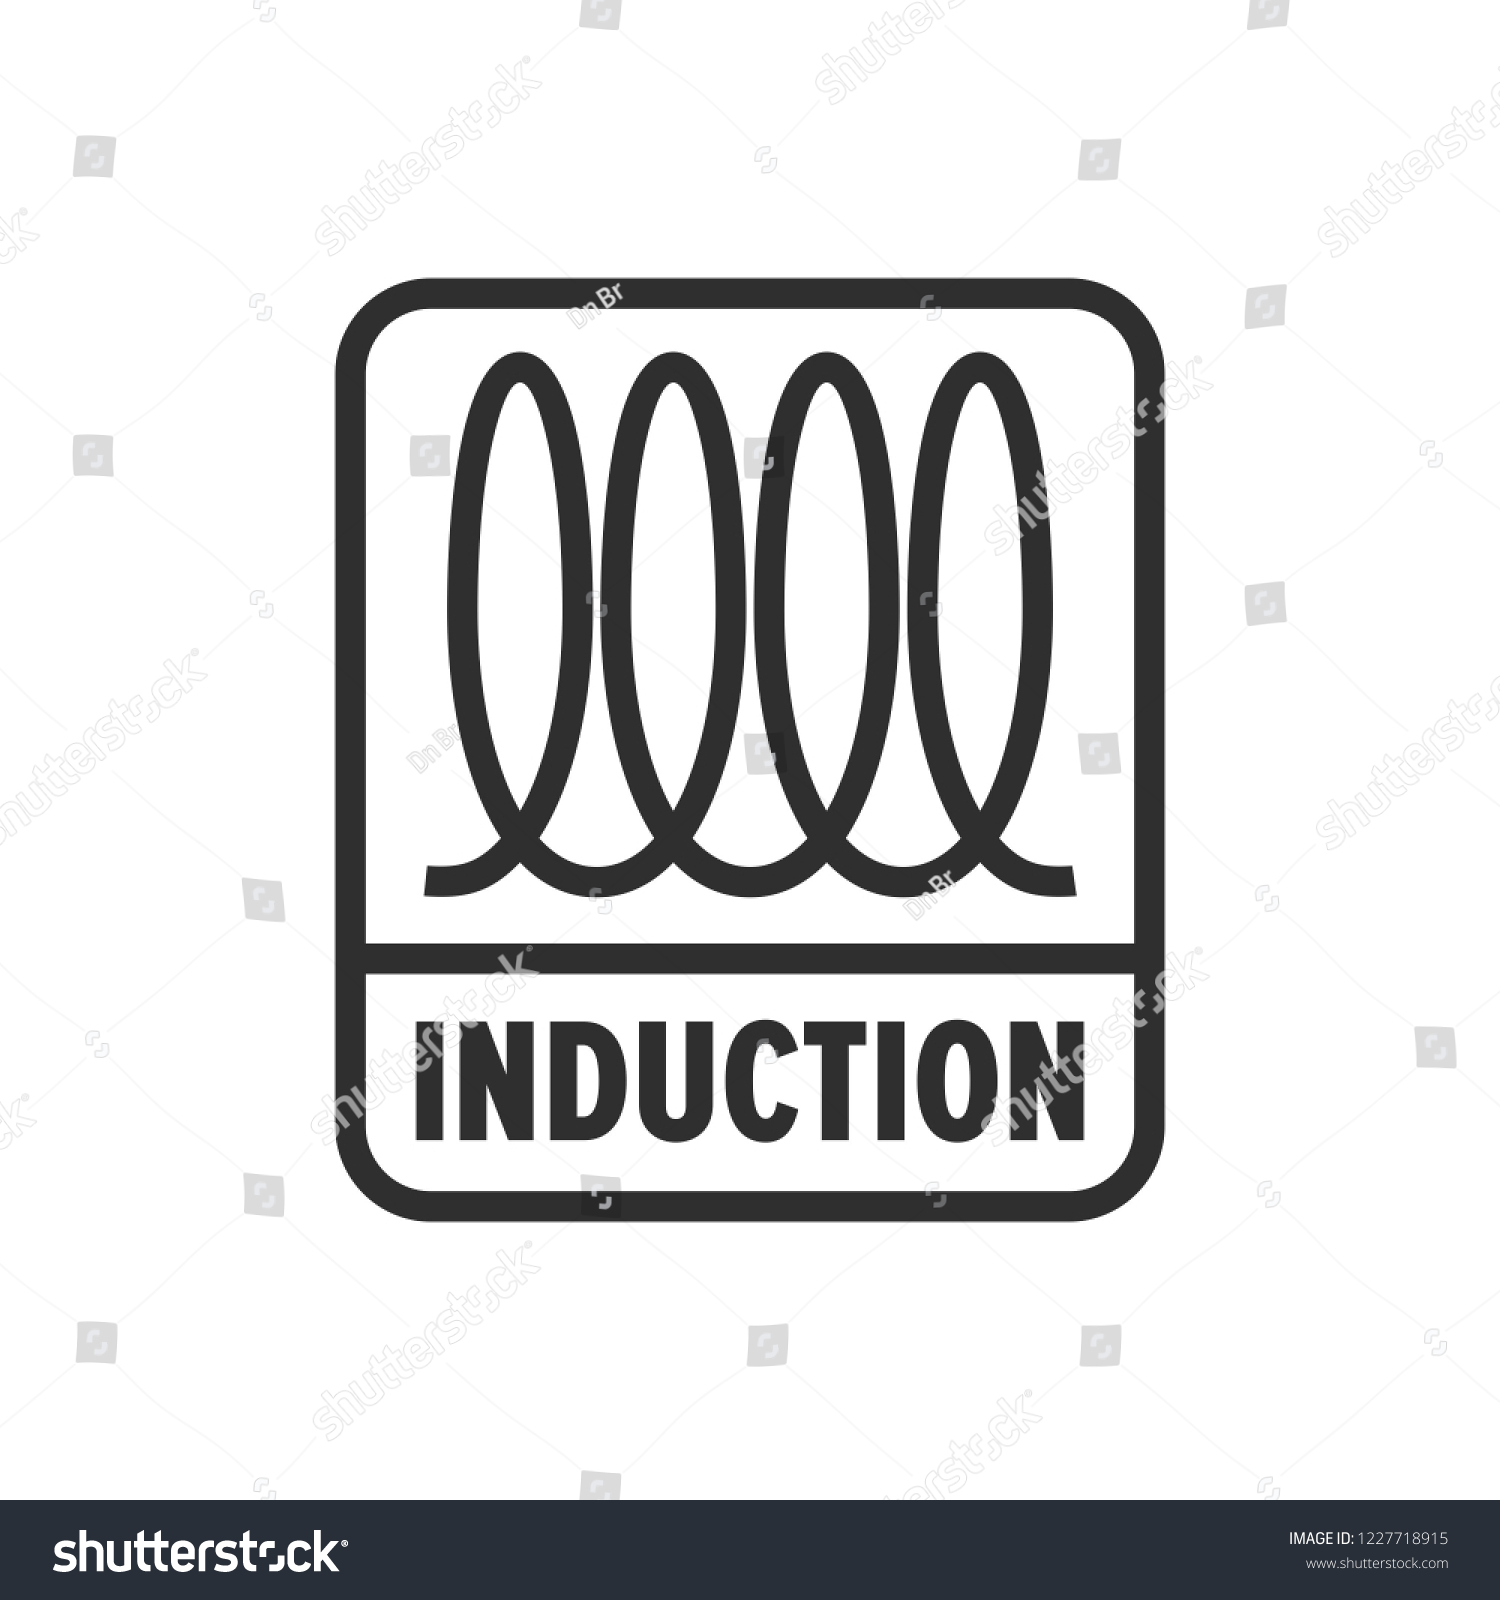 Symbole Induction Induction Cooking Spiral Electrical Sign Image Vectorielle De